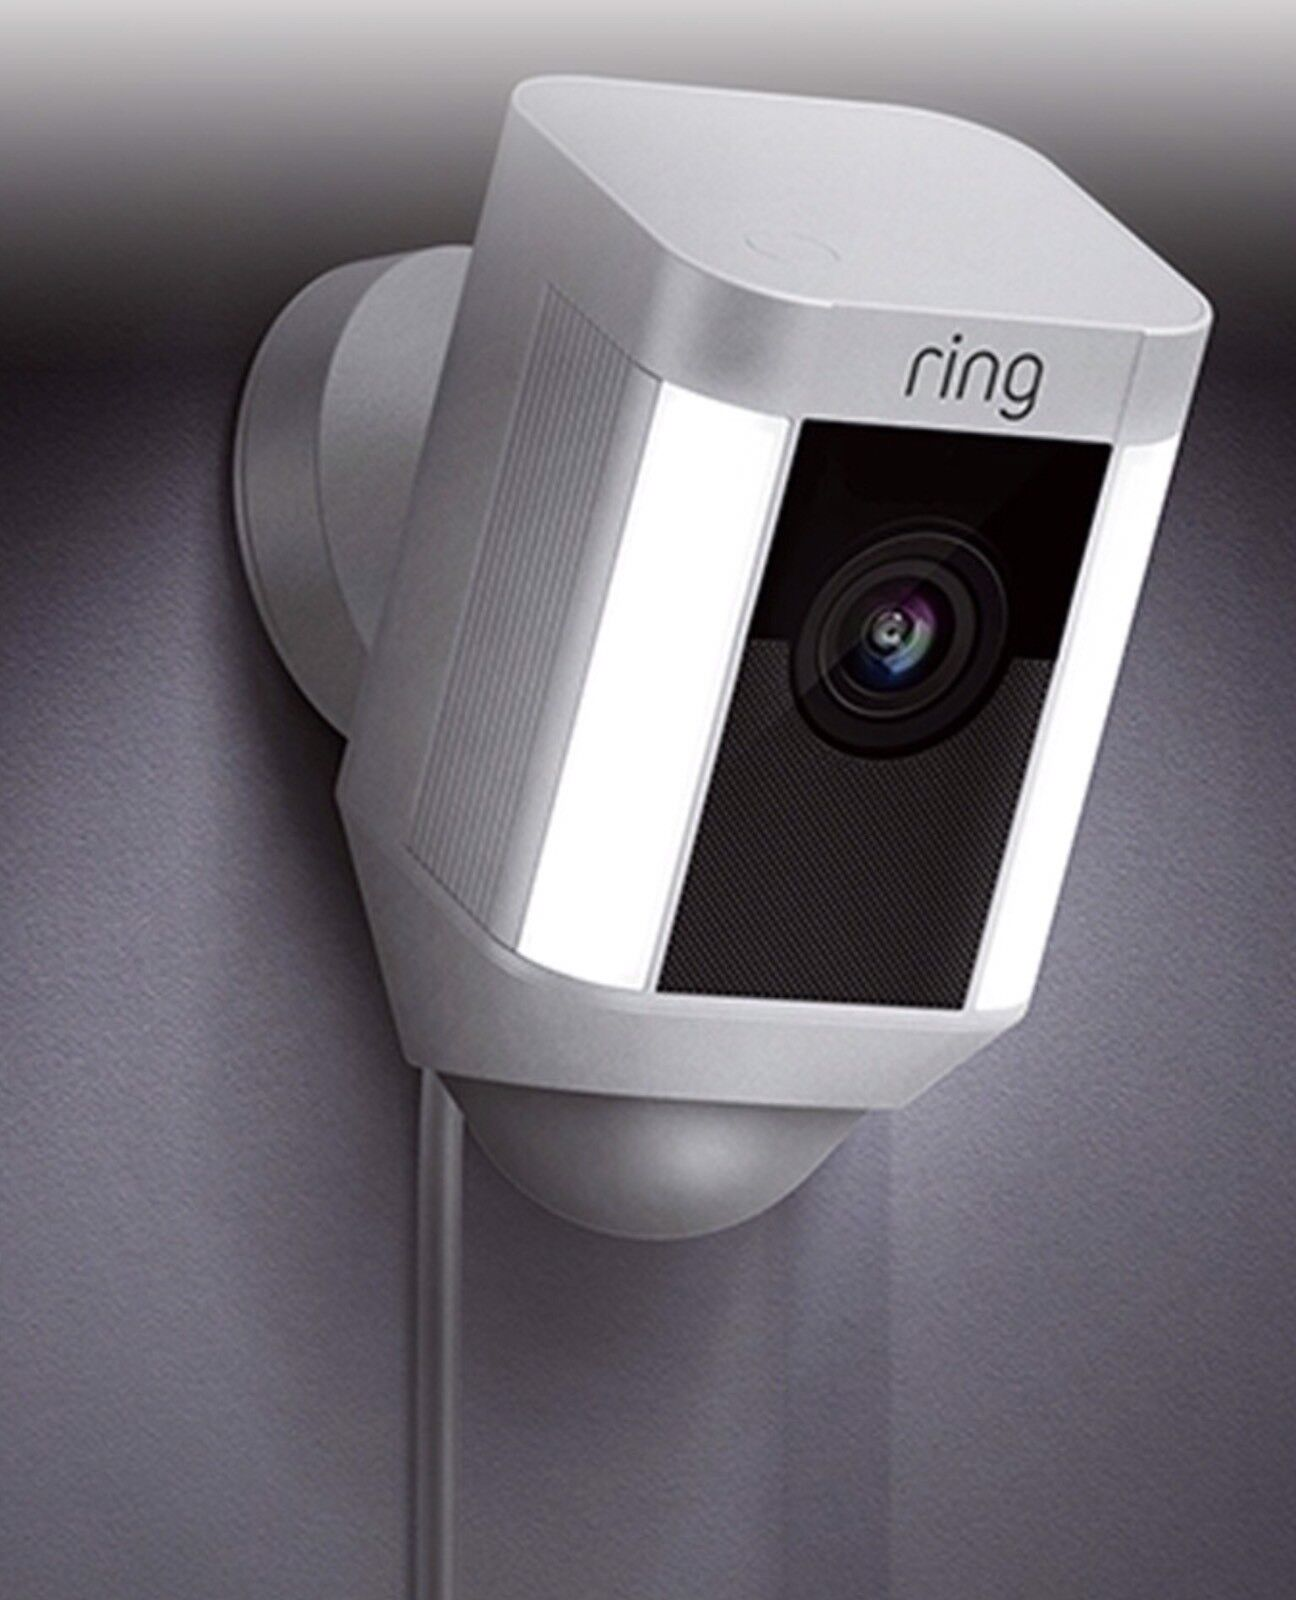 White Ring Spotlight Outdoor Security Camera 8SH1P7-WEN0 Wired